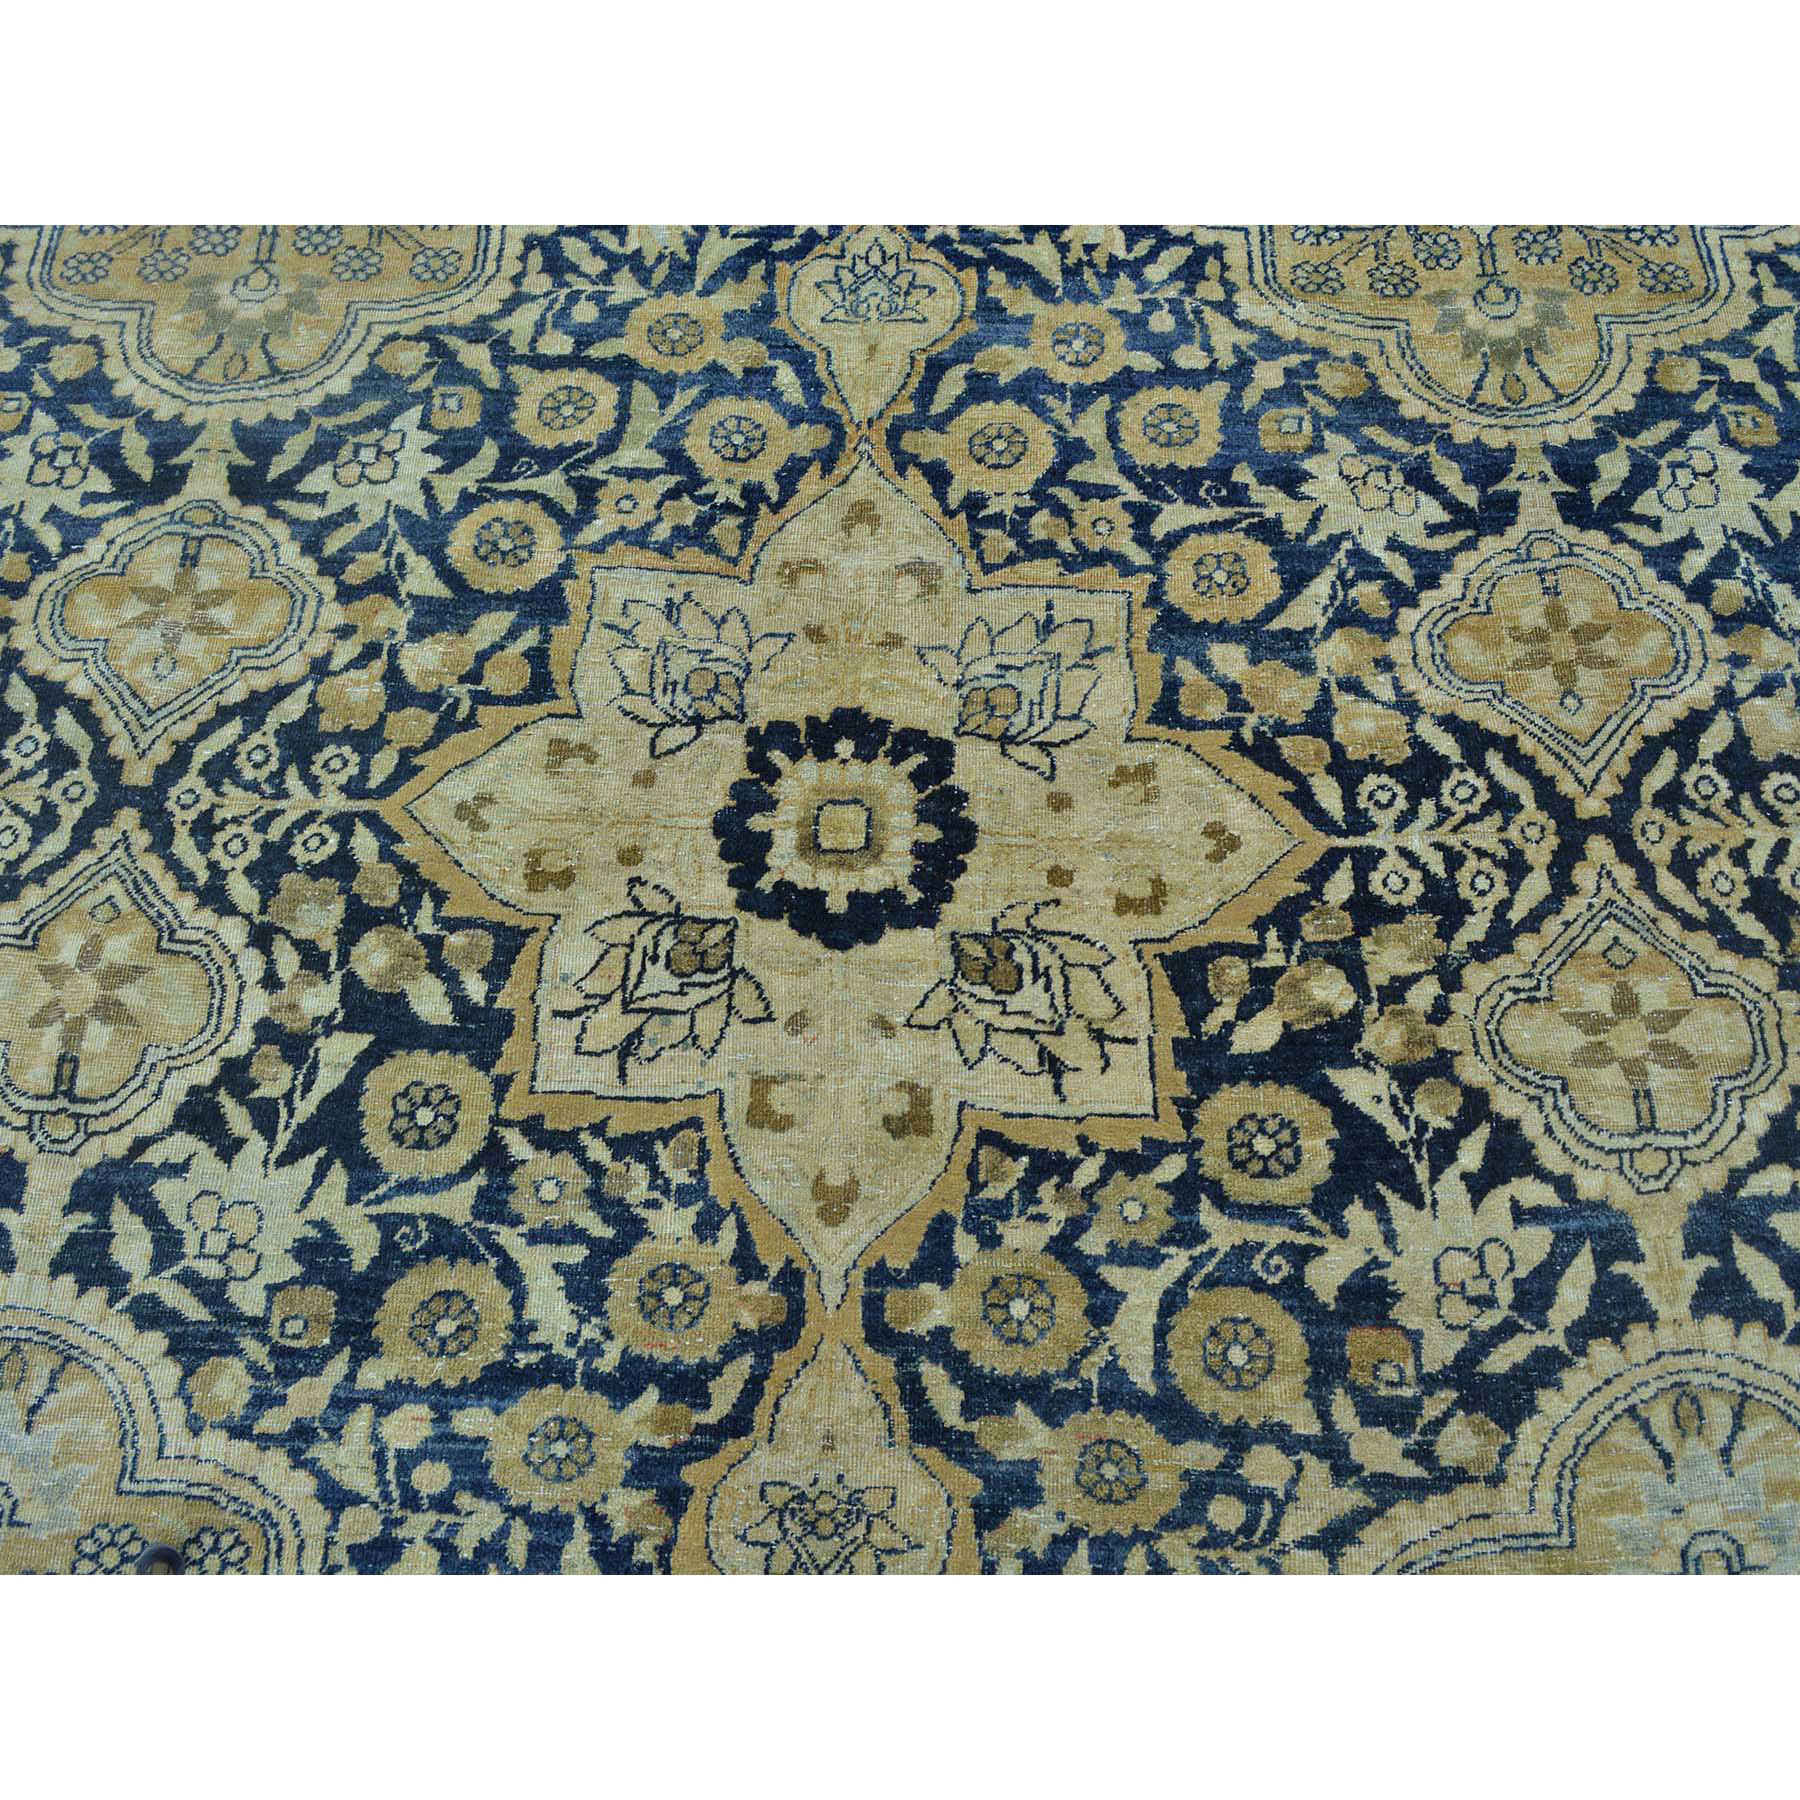 9-5 x14- Antique Persian Kerman Exc Cond Hand Knotted Oriental Rug